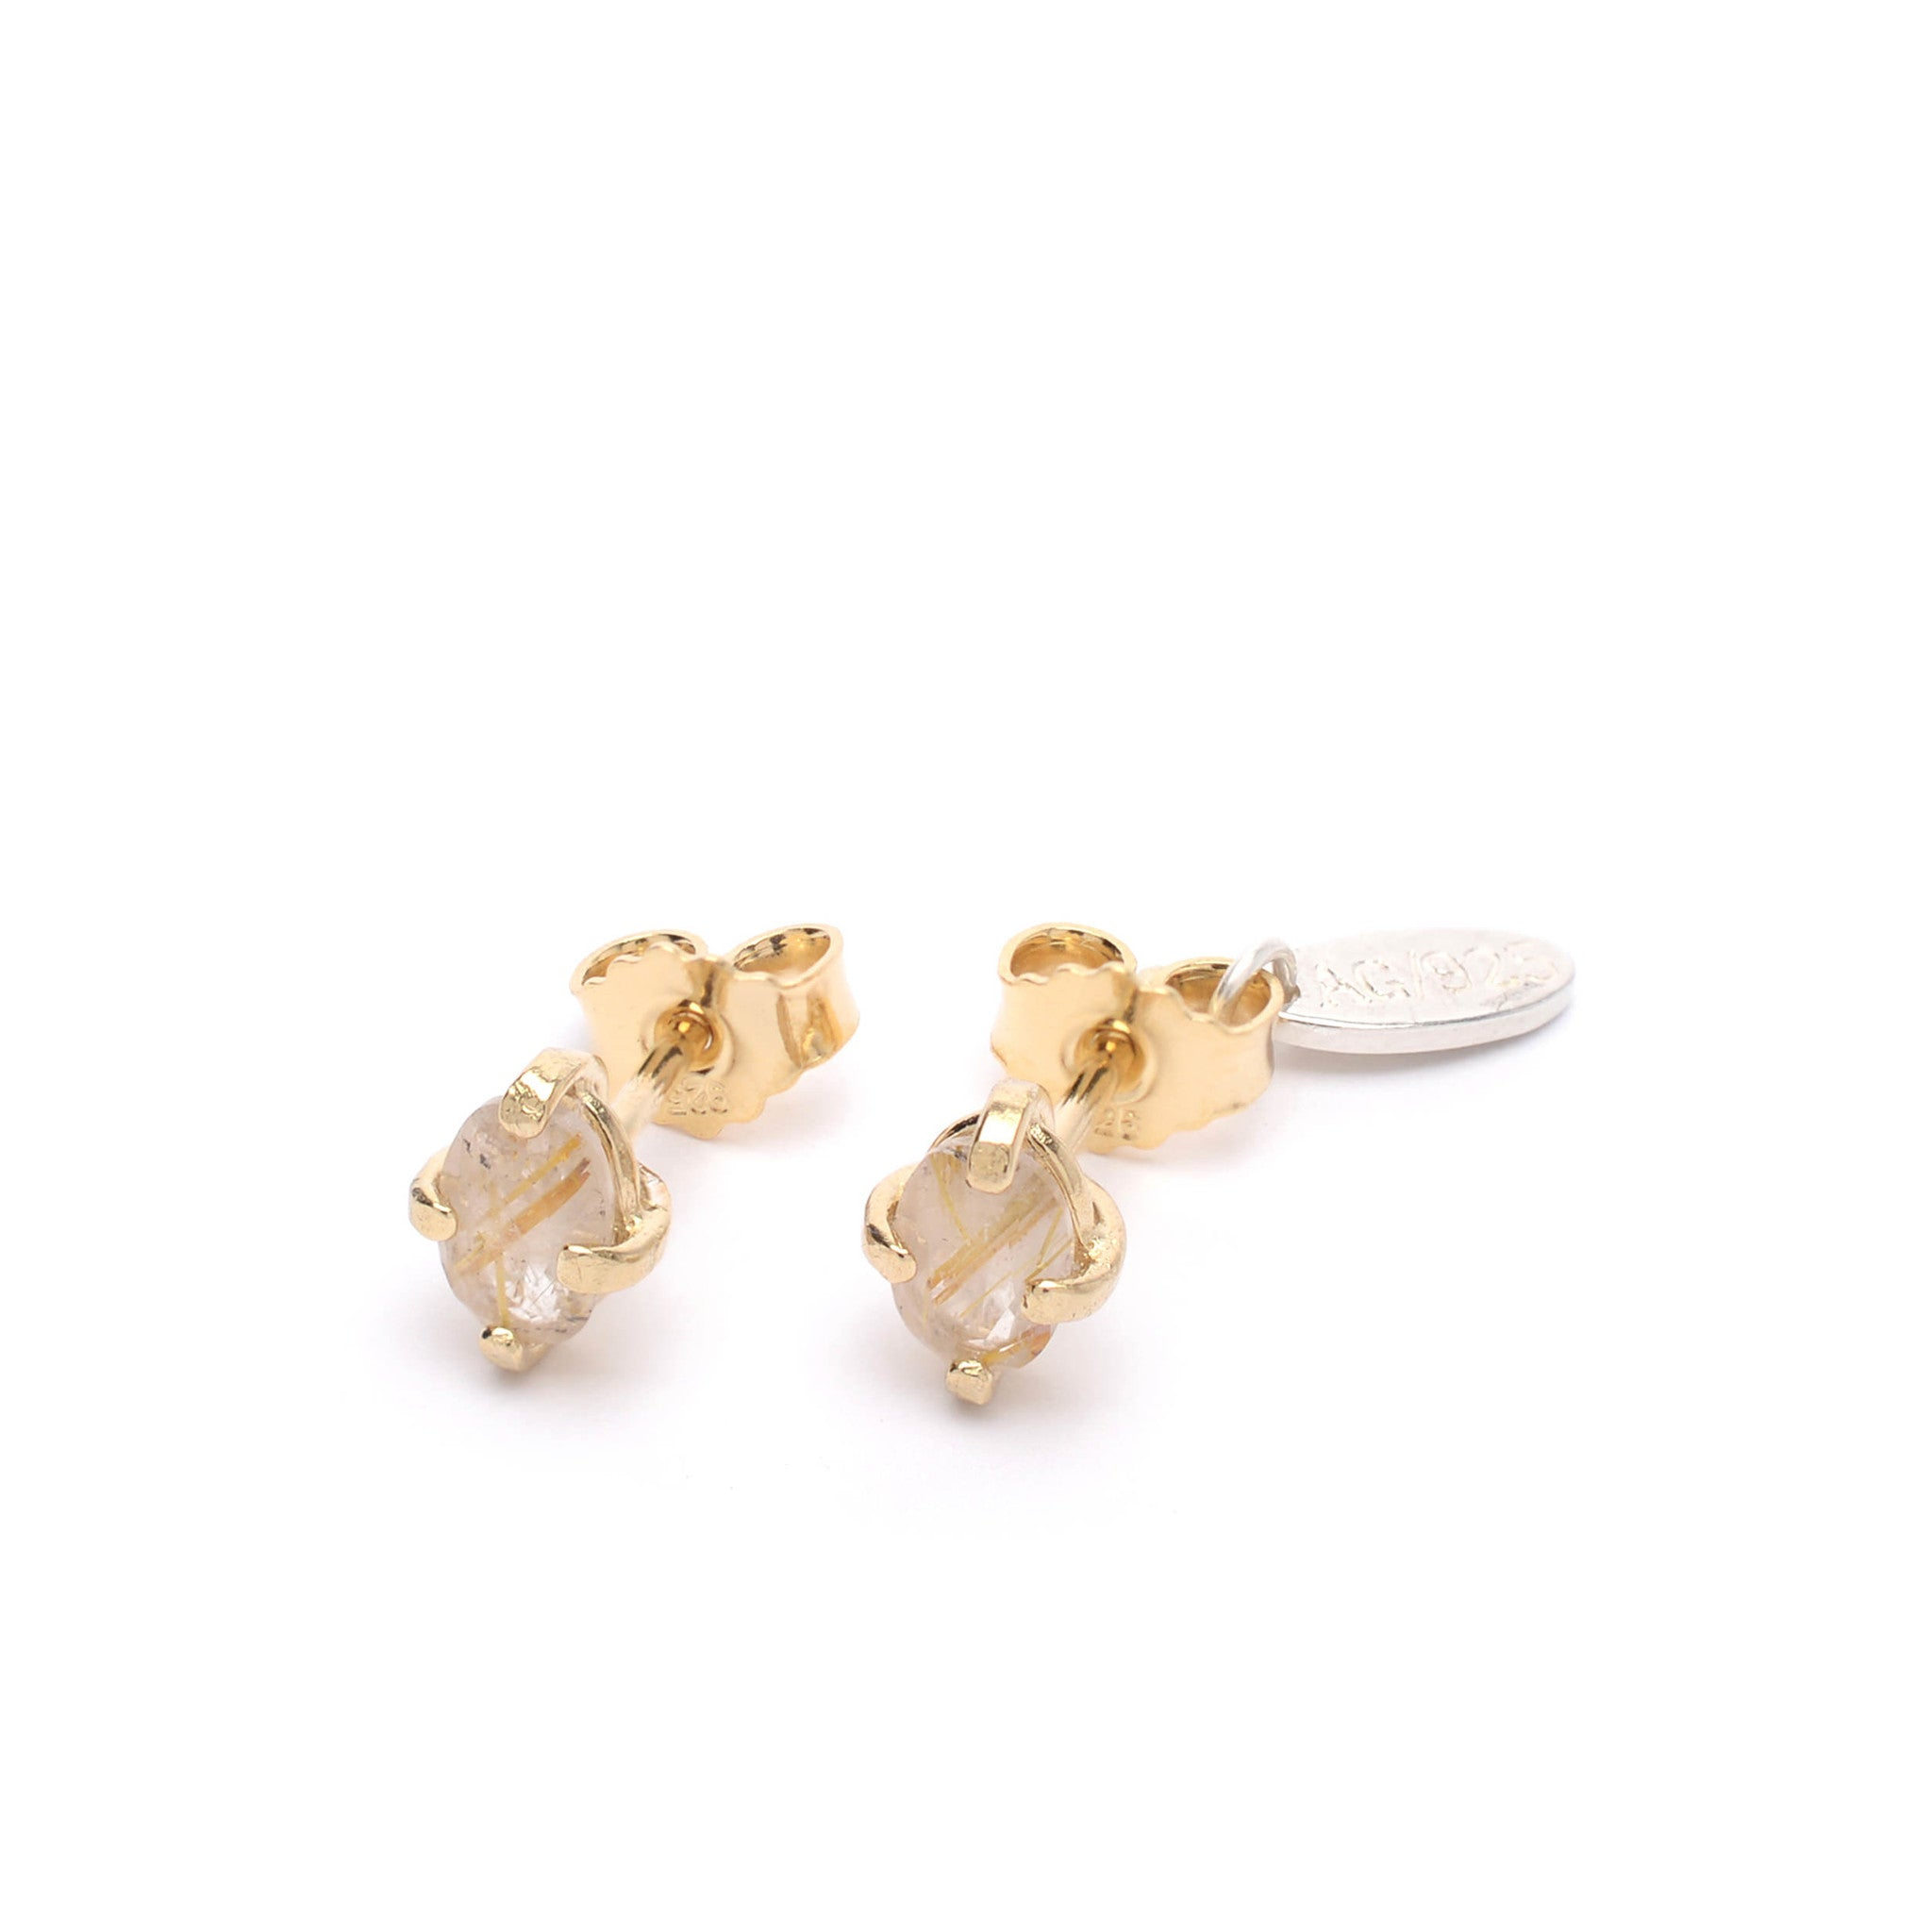 Sterling Silver stud earrings with Rutilated Quartz